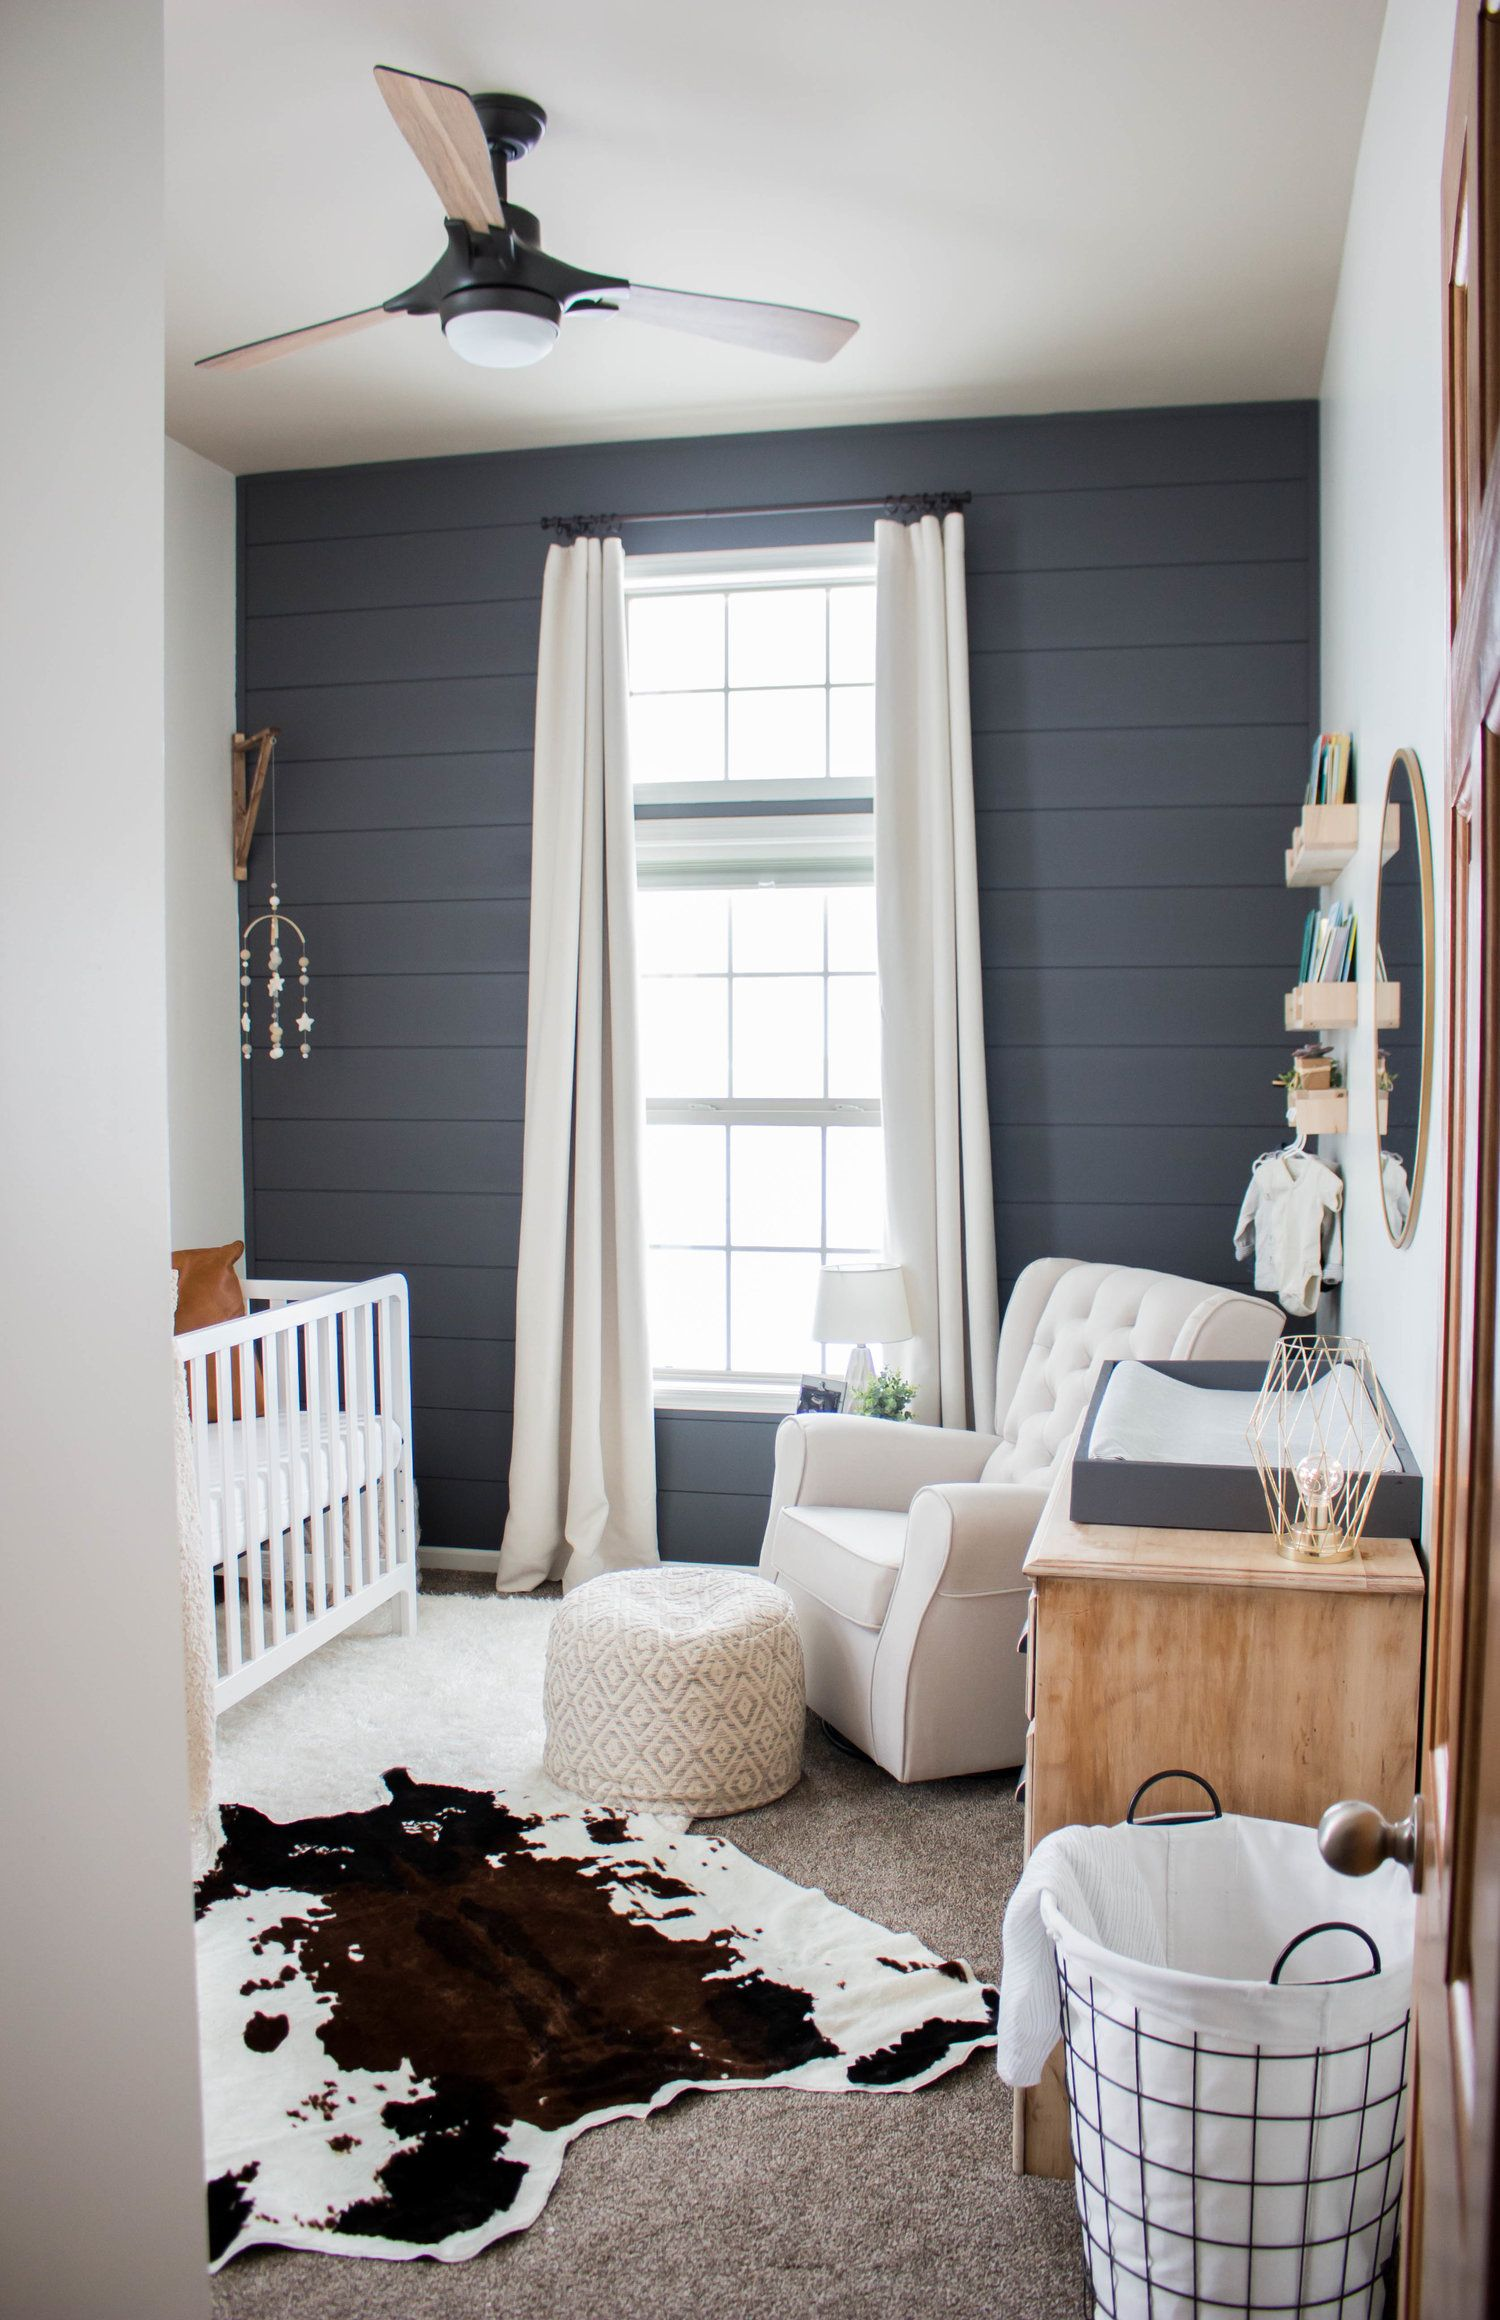 Baby Boy Room Mural Ideas: Baby Bedroom, Baby Boy Rooms, Boy Room